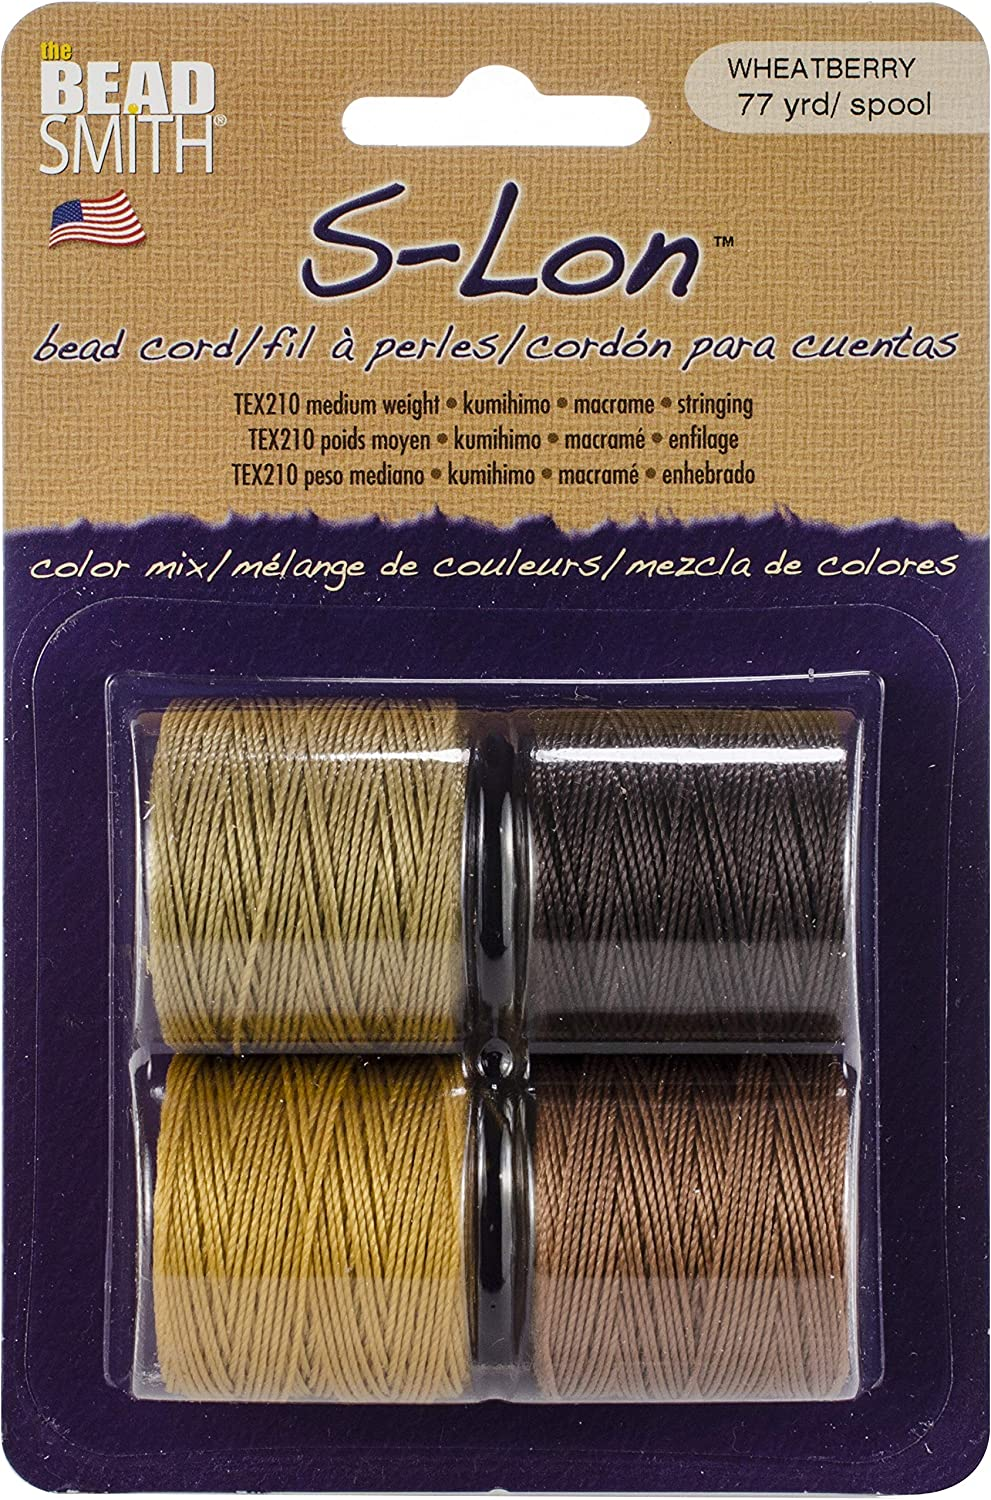 4 Spools Mail order Online limited product Super-lon #18 Cord Stringing Crochet for Beading Ideal